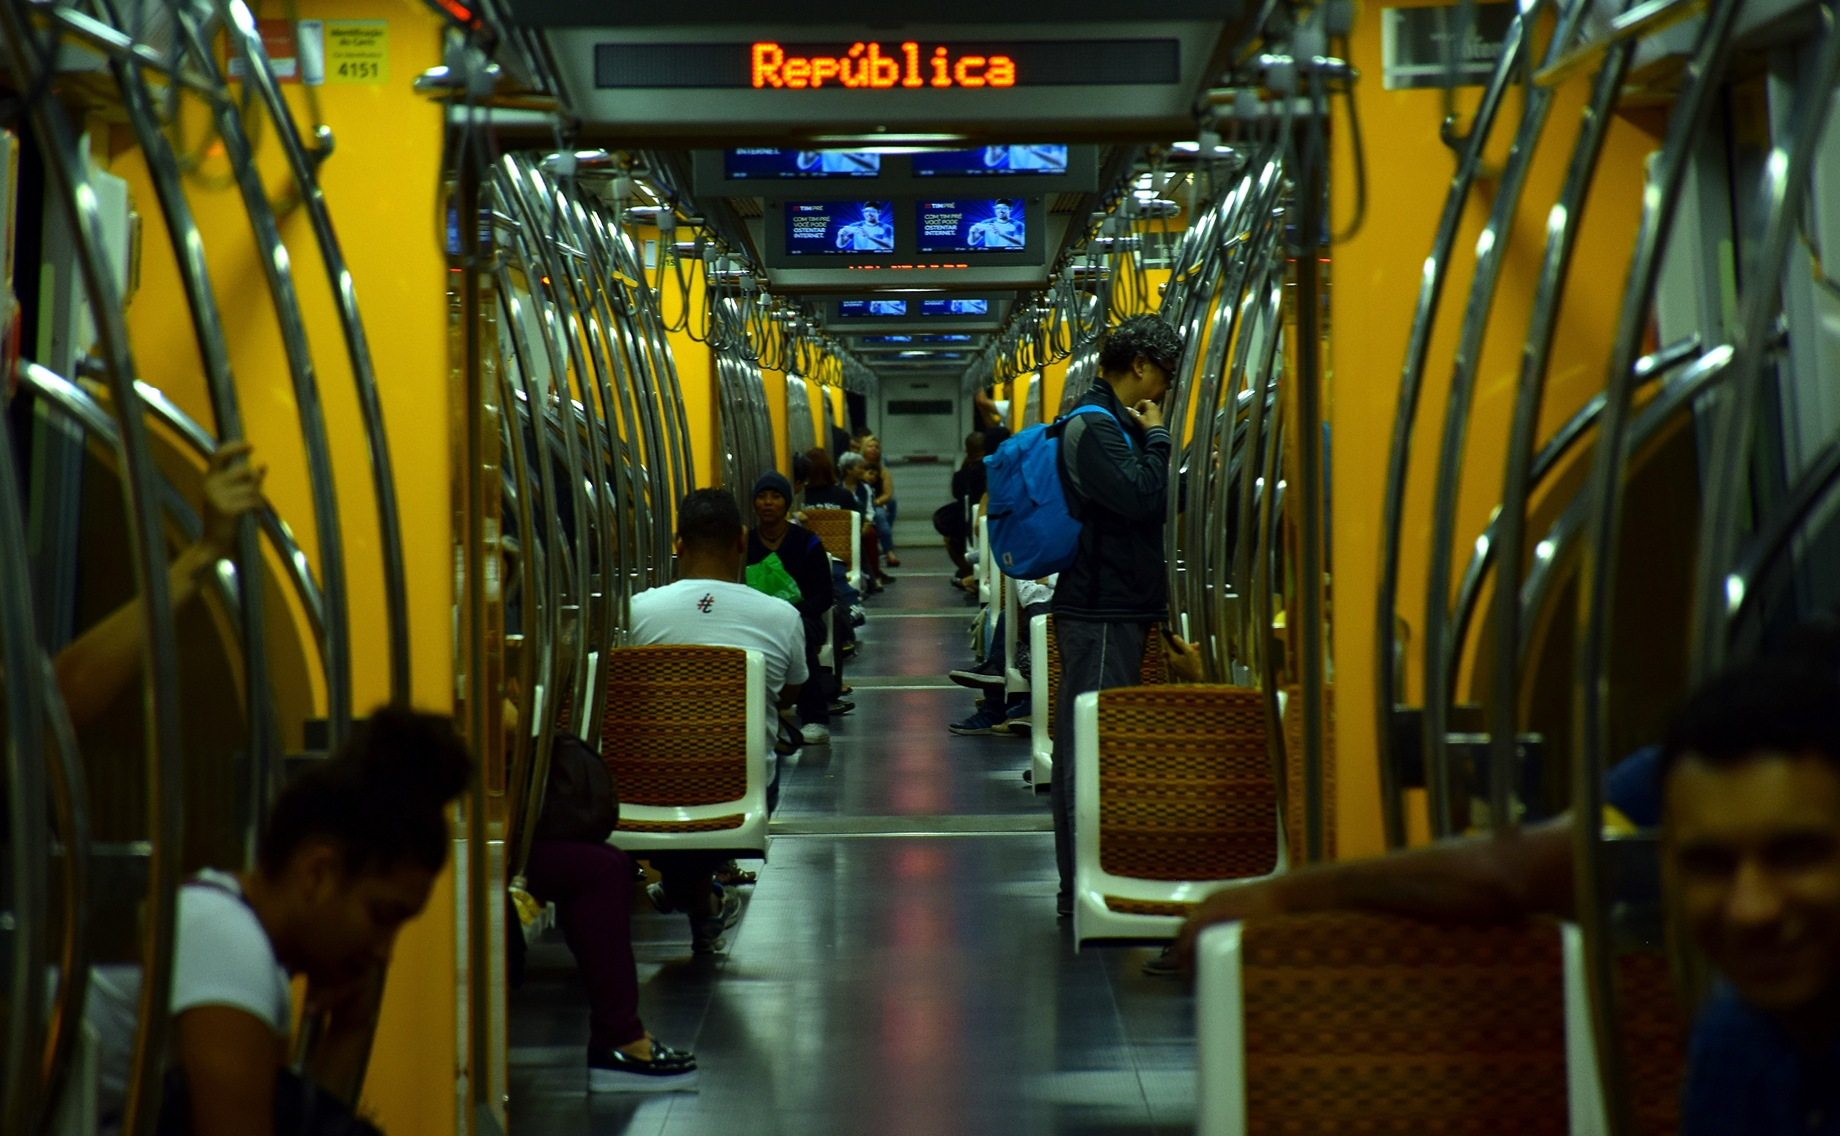 Metrô by LuixCelso